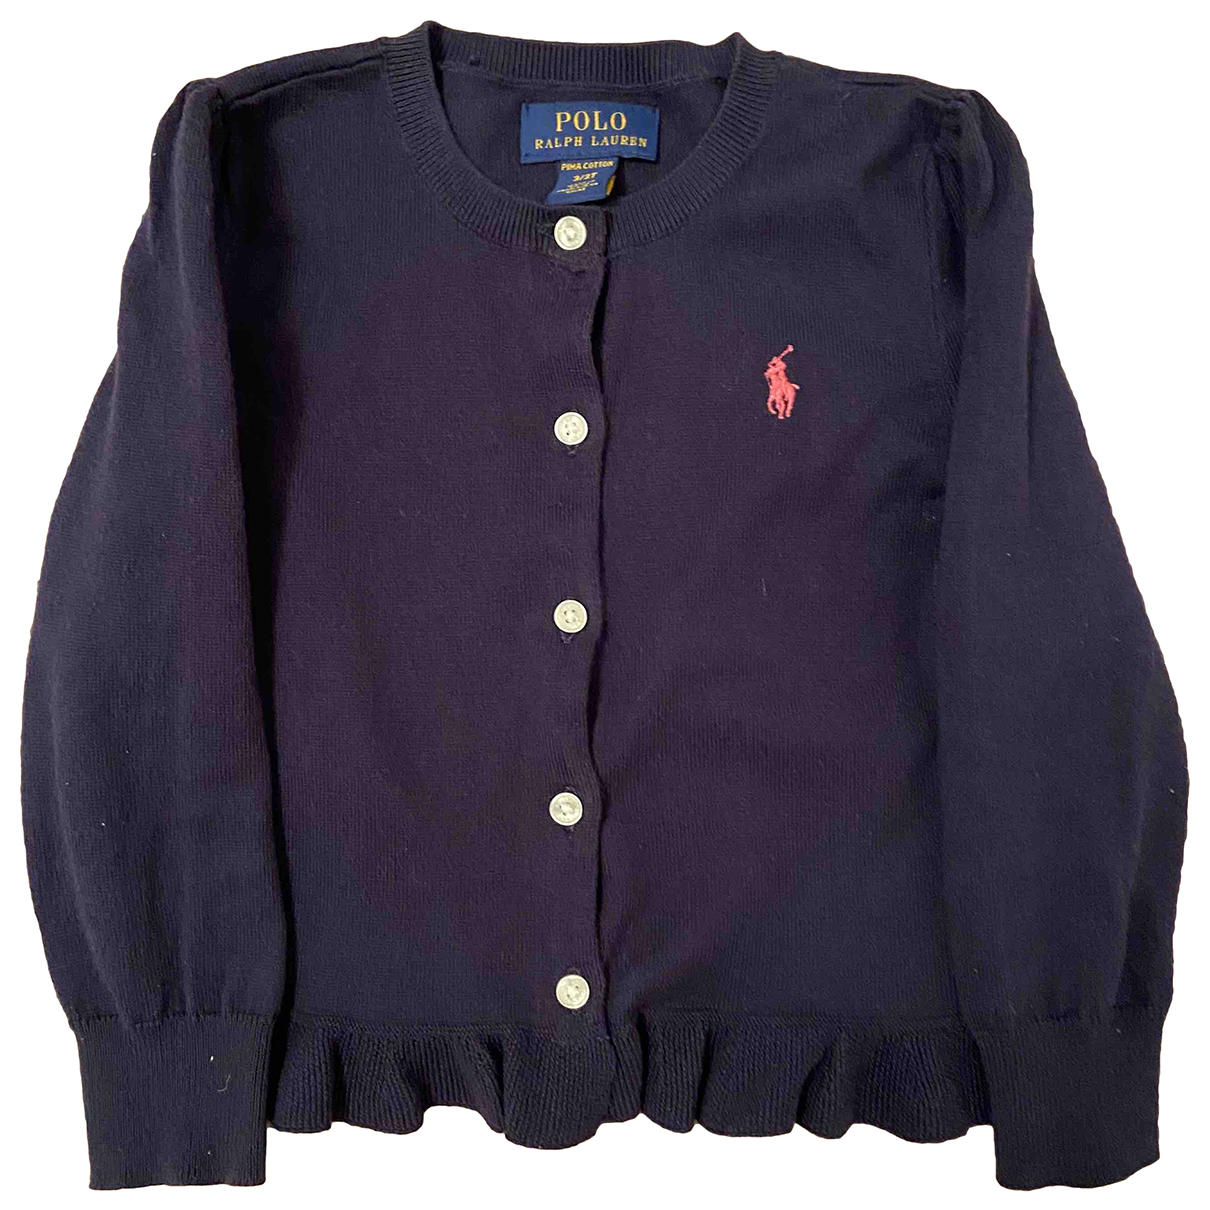 Ralph Lauren N Blue Cotton Knitwear for Kids 3 years - up to 98cm FR